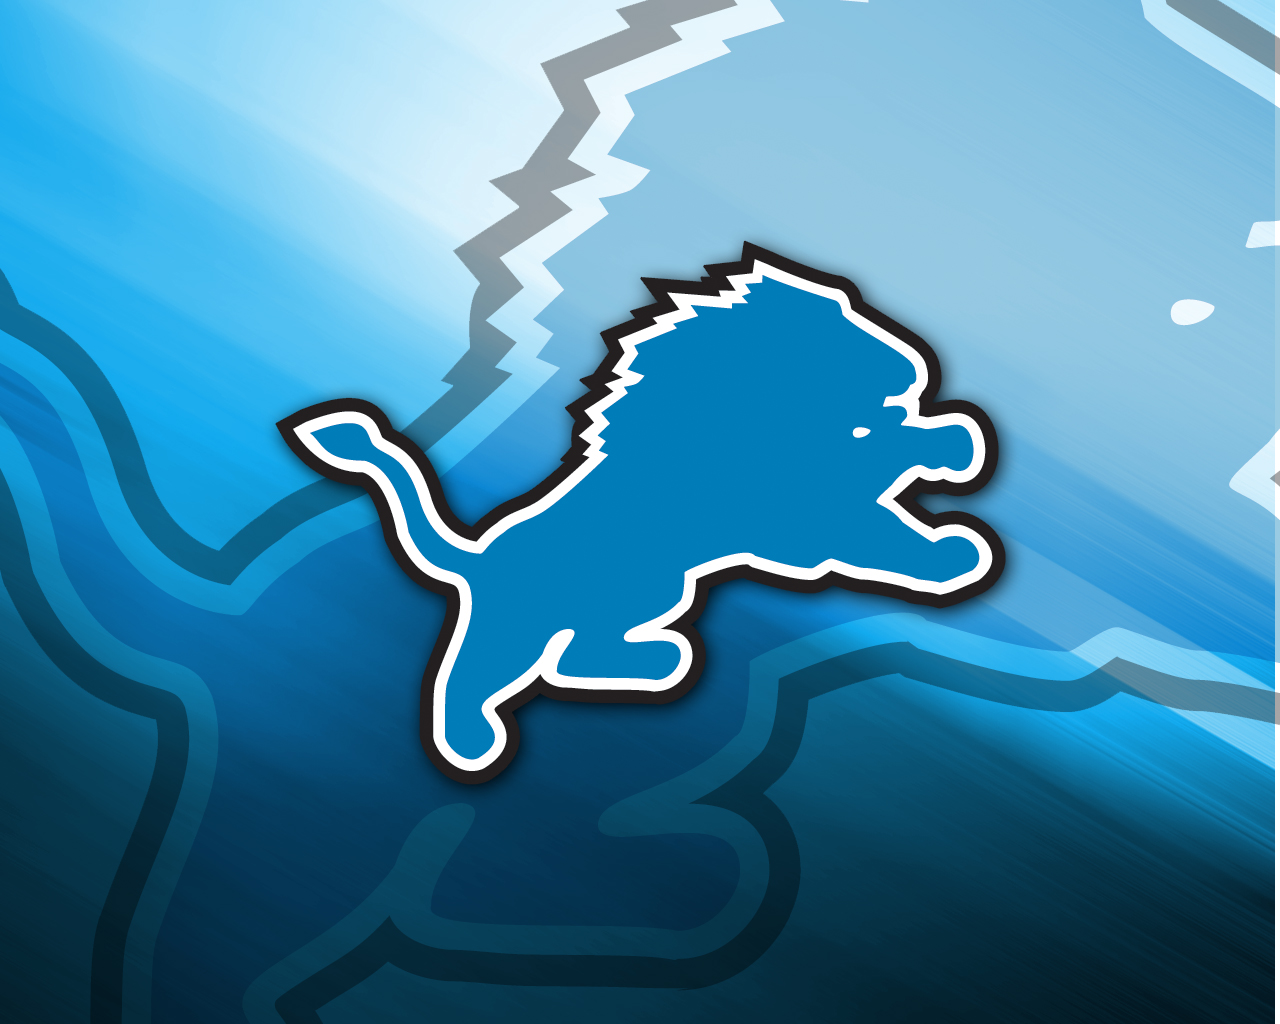 Wallpapers By Wicked Shadows: Detroit Lions NFL wallpapers 1280x1024